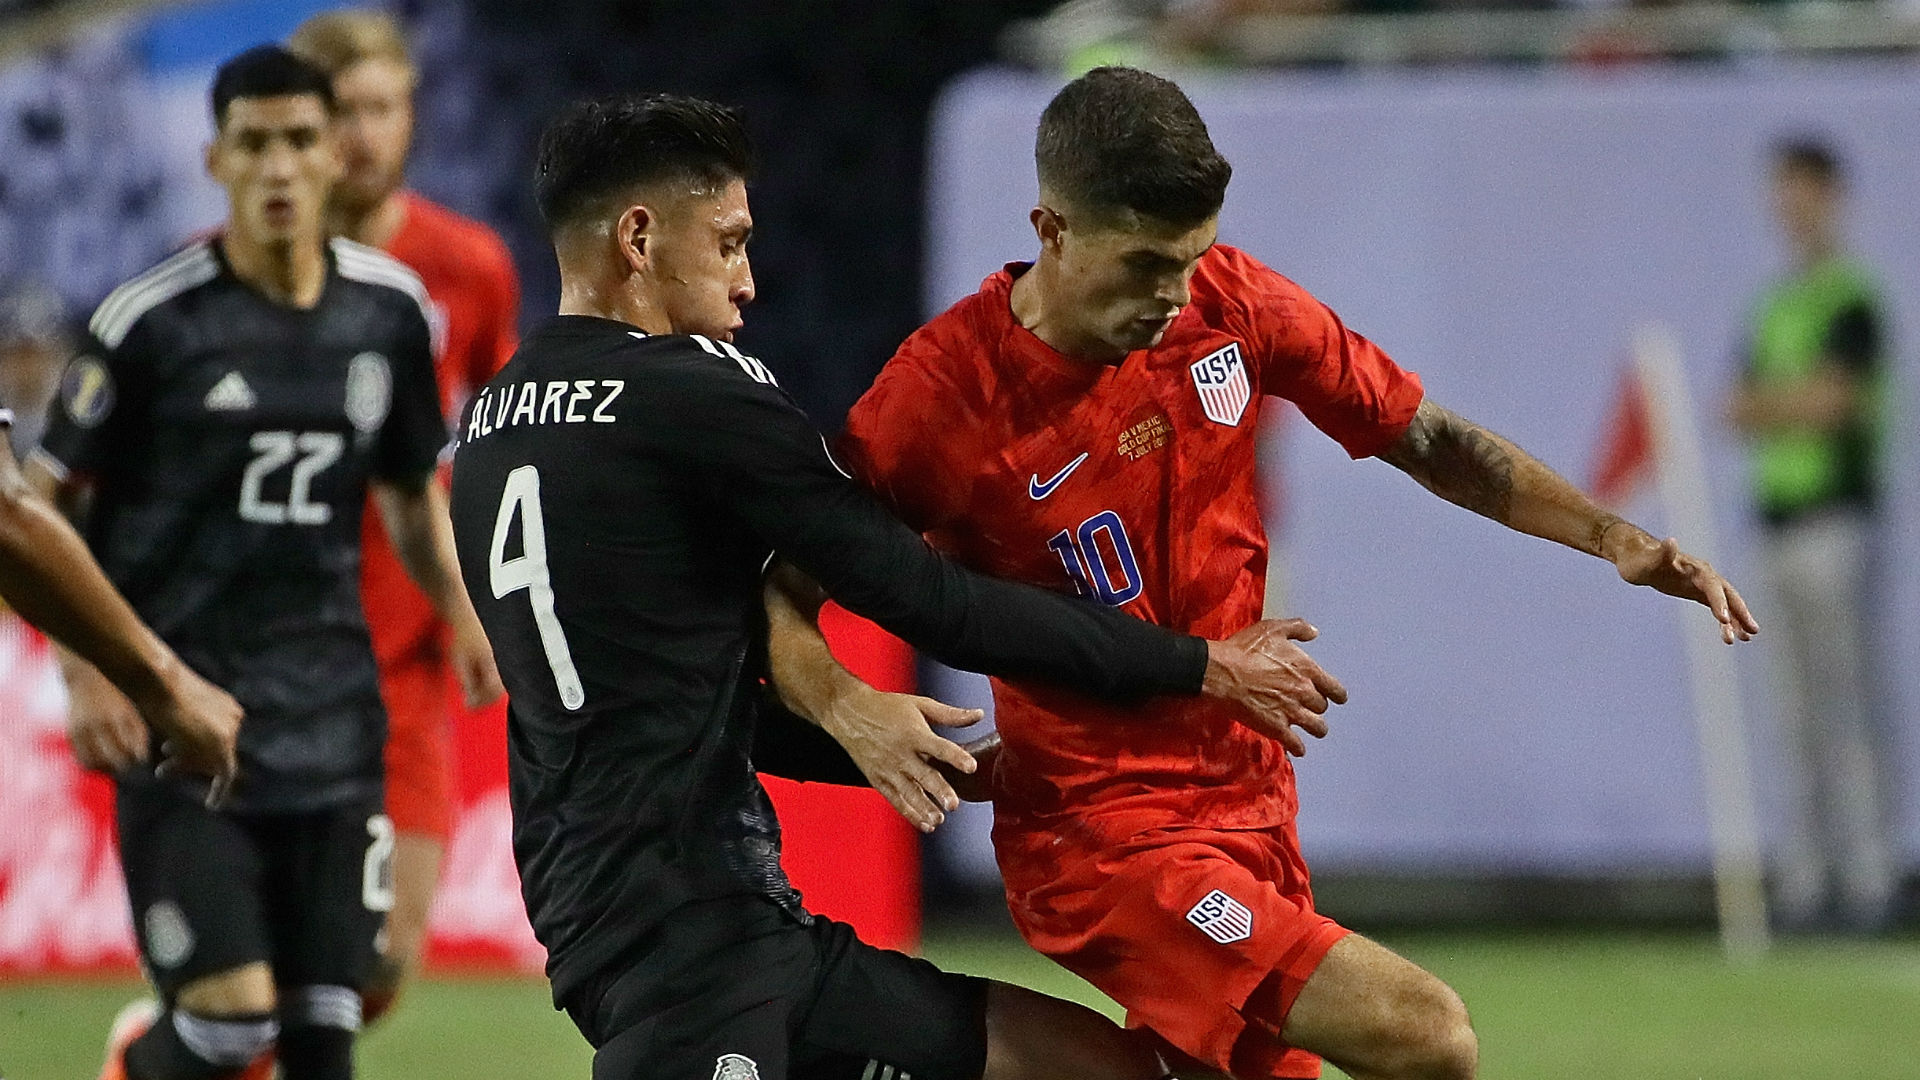 Berhalter concedes Mexico 'slightly ahead' of USMNT ahead of friendly rematch